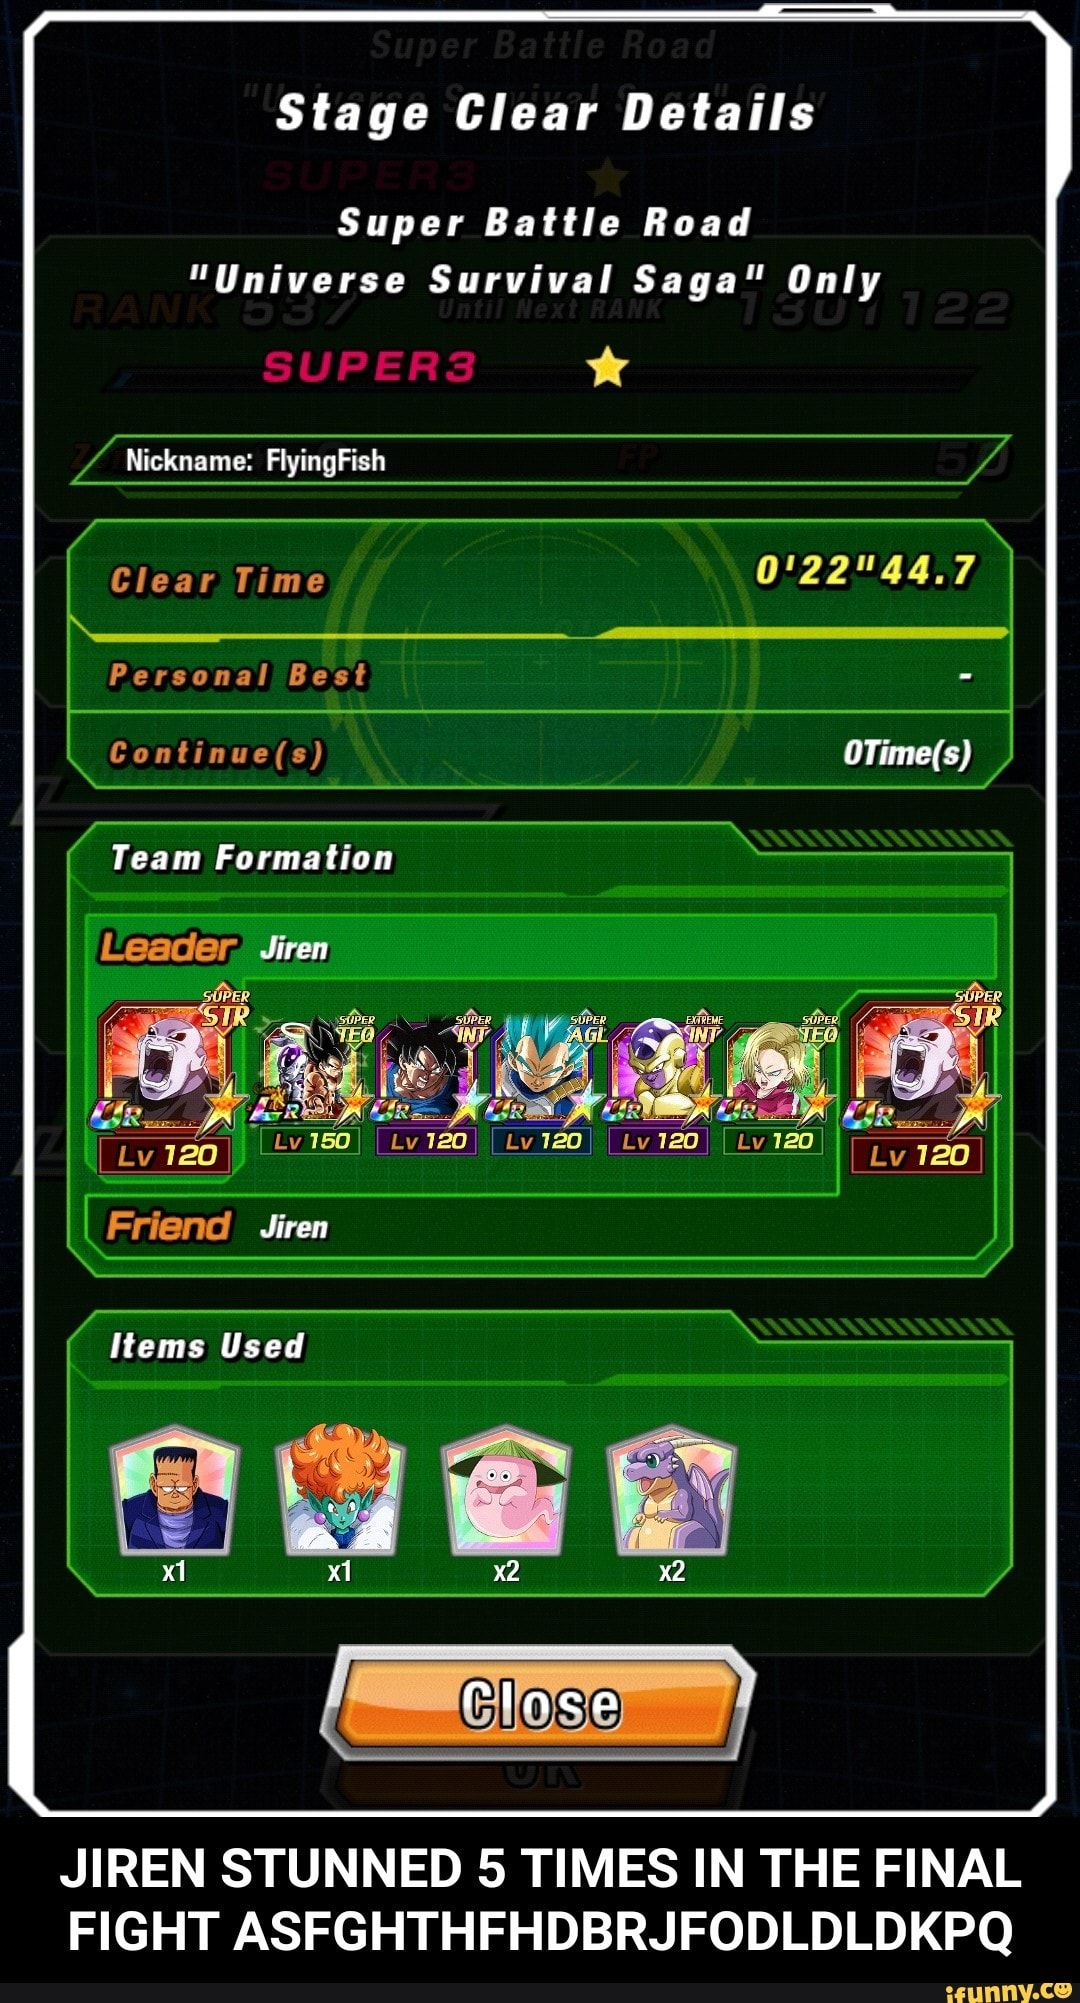 Stage Clear Details Super Battle Road Universe Survival Saga Only Jiren Stunned 5 Times In The Final Fight Asfghthfhdbrjfodldldkpq Jiren Stunned 5 Times In Memes Ifunny Still Love You